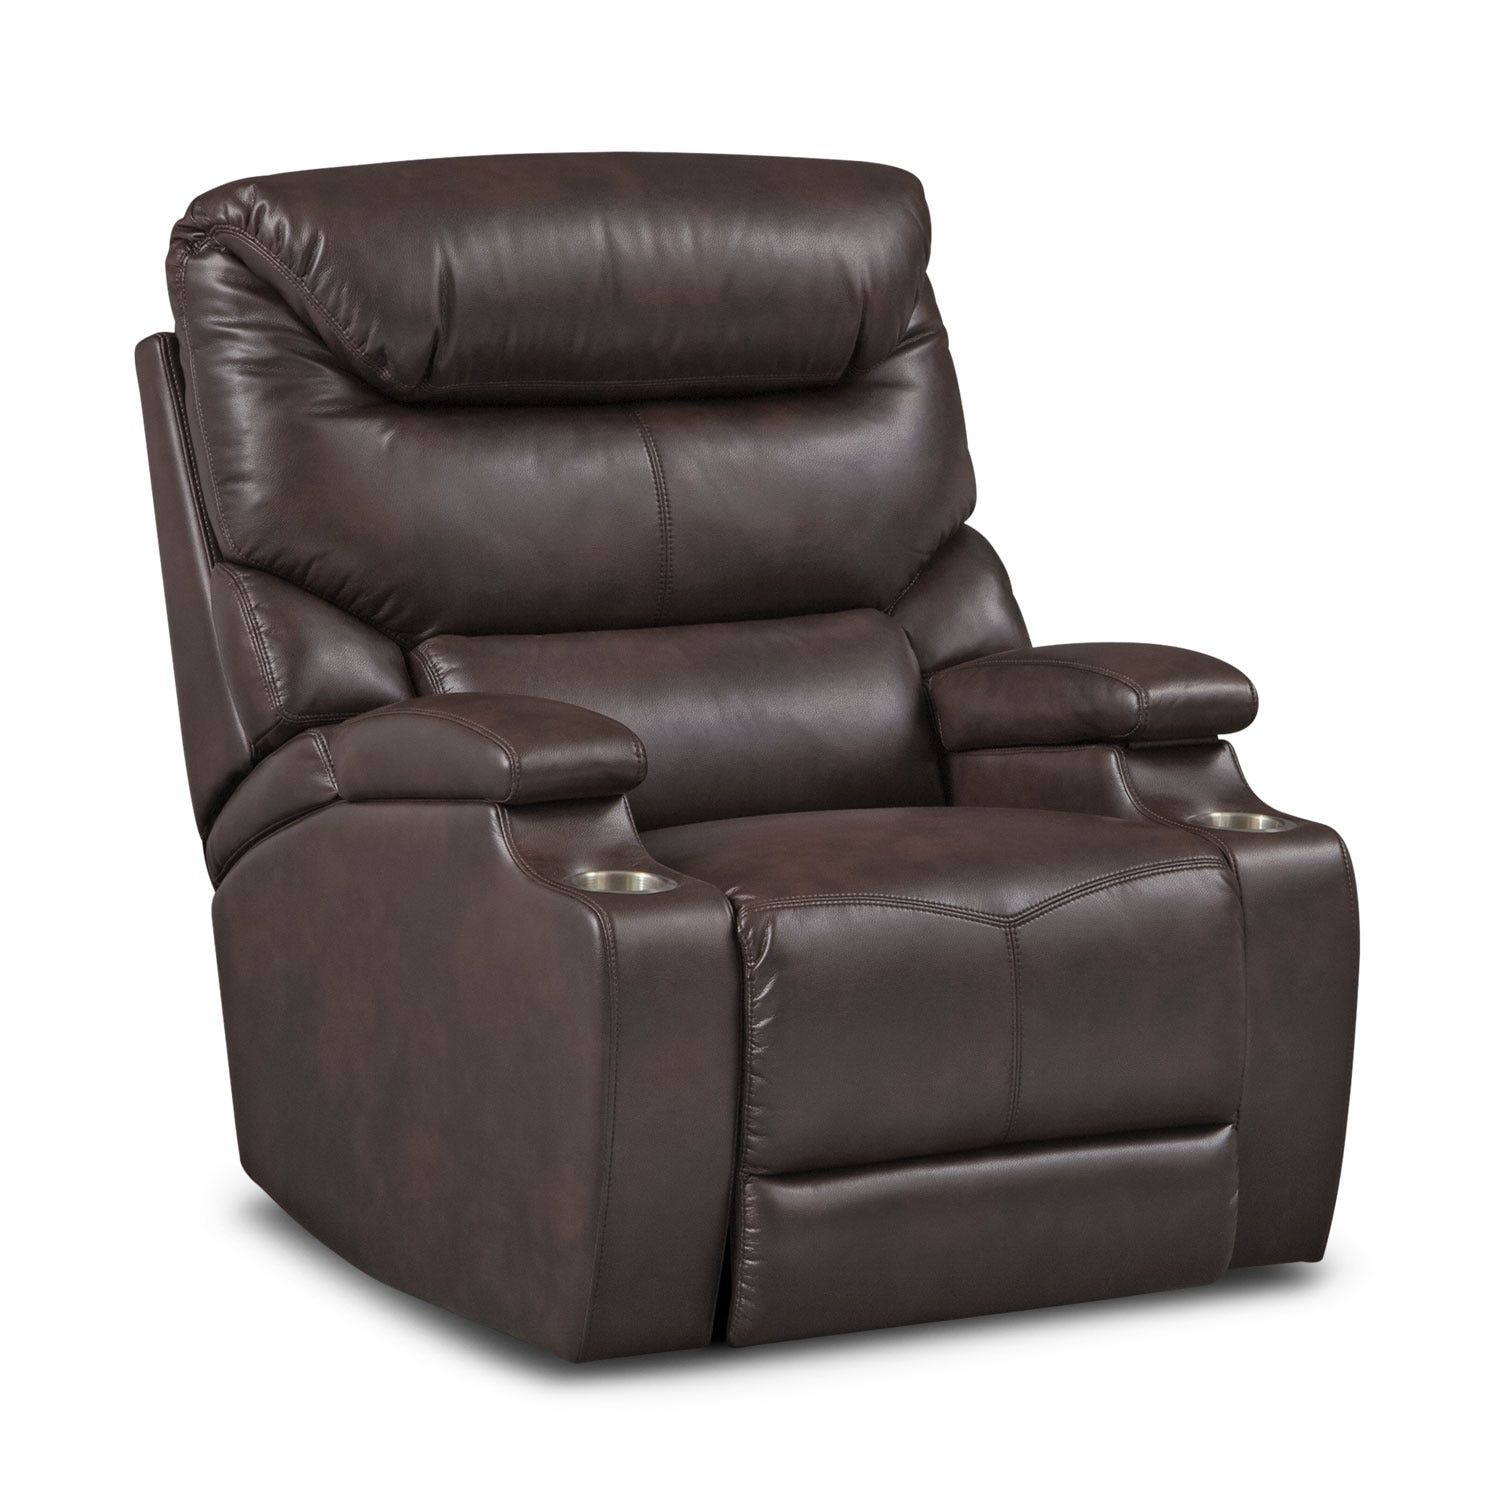 chairs powell furniture recliners products recliner franklin lift